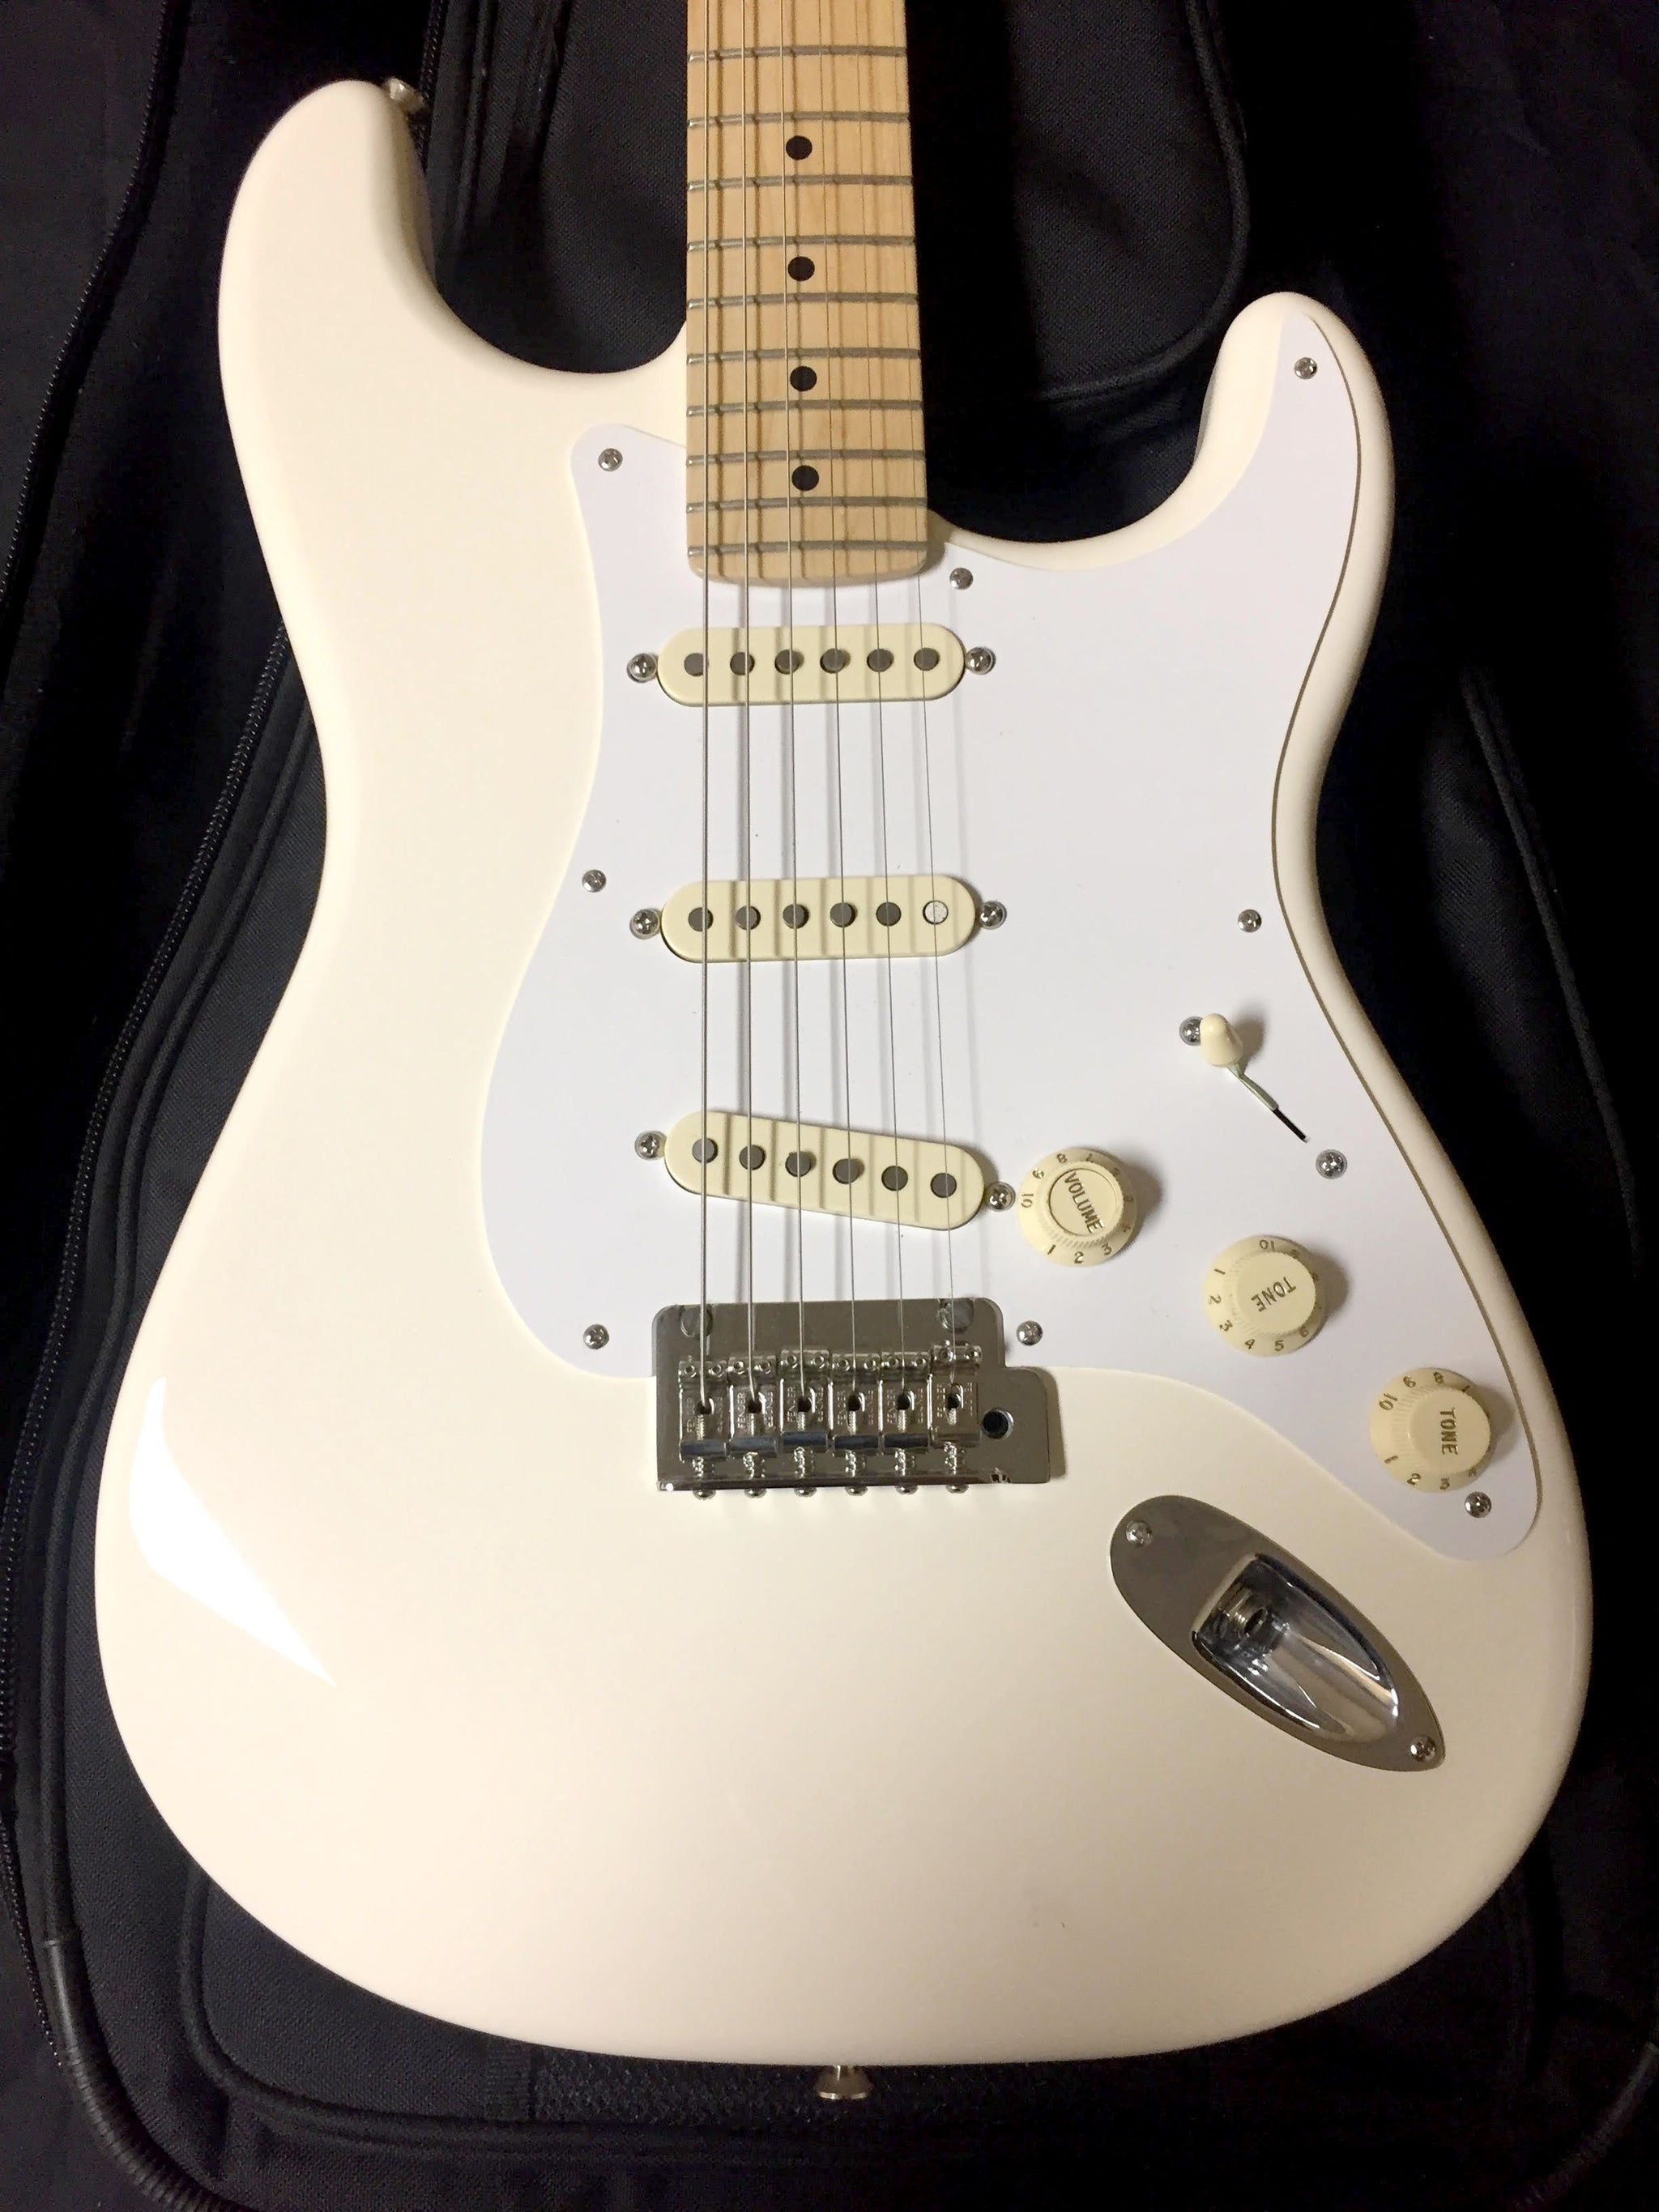 Fender 2014 Stratocaster w/ S1 Switch Olympic White ****SOLD****